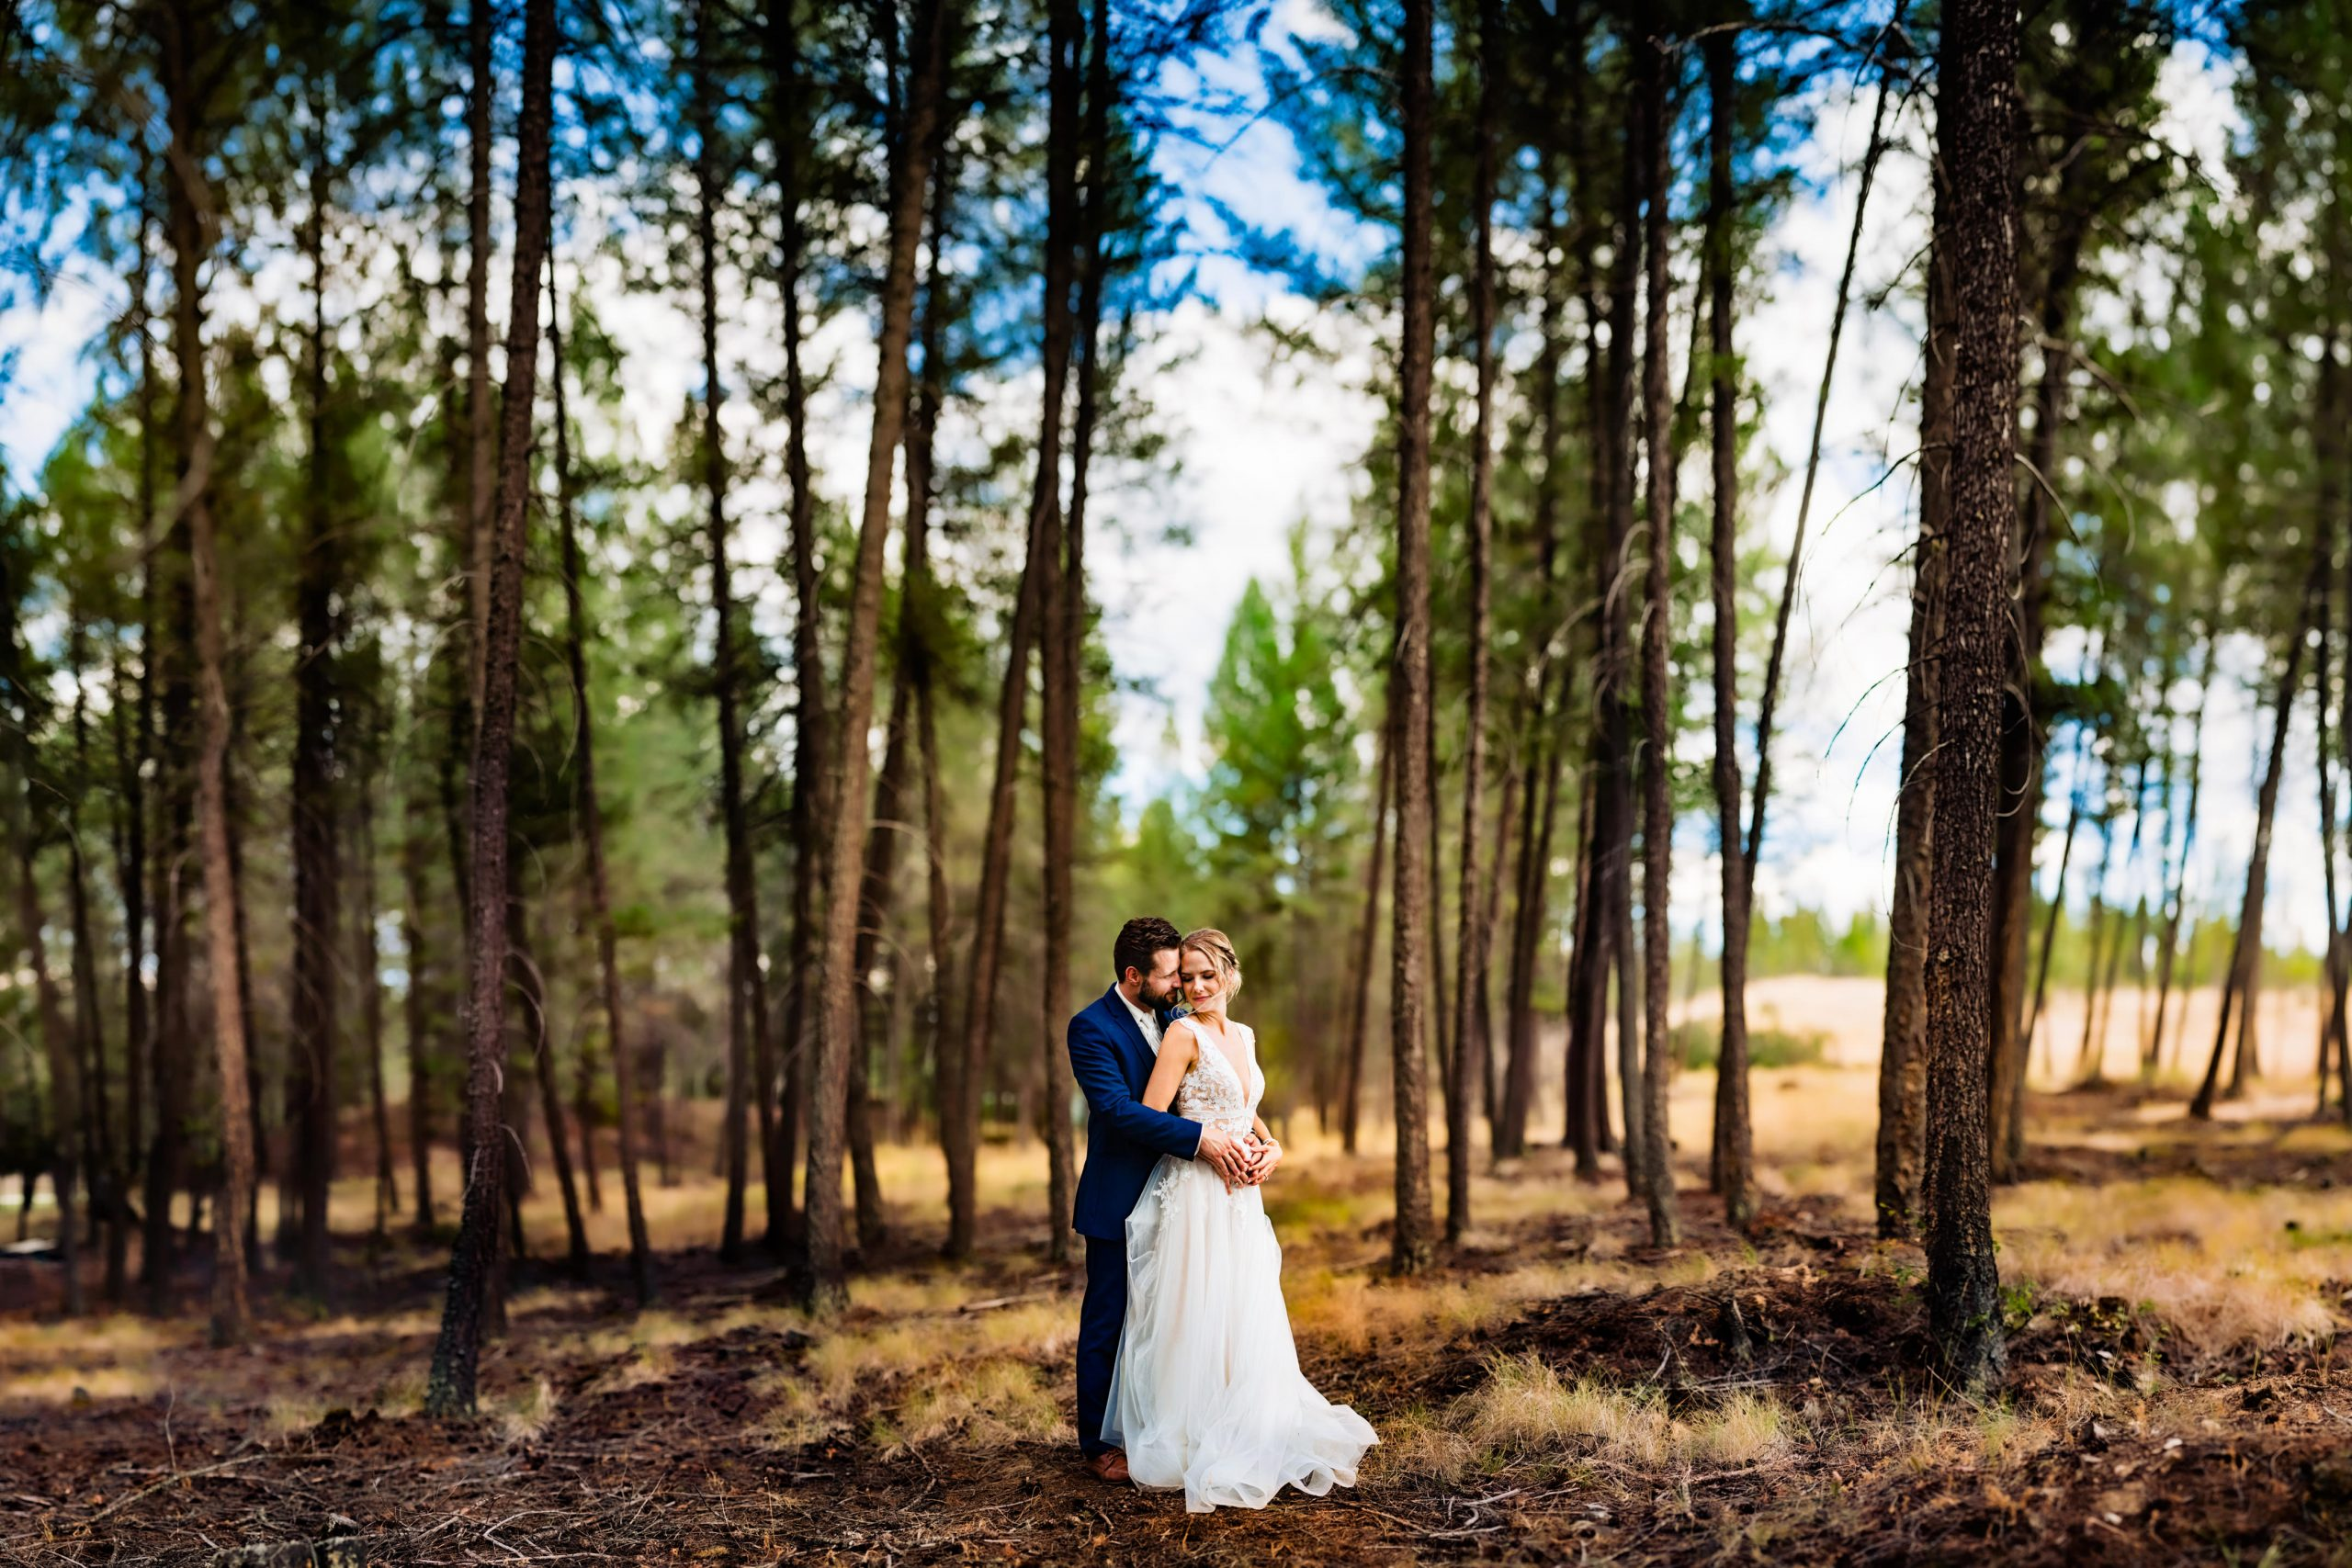 Groom holds the bride in a grove of evergreen trees.